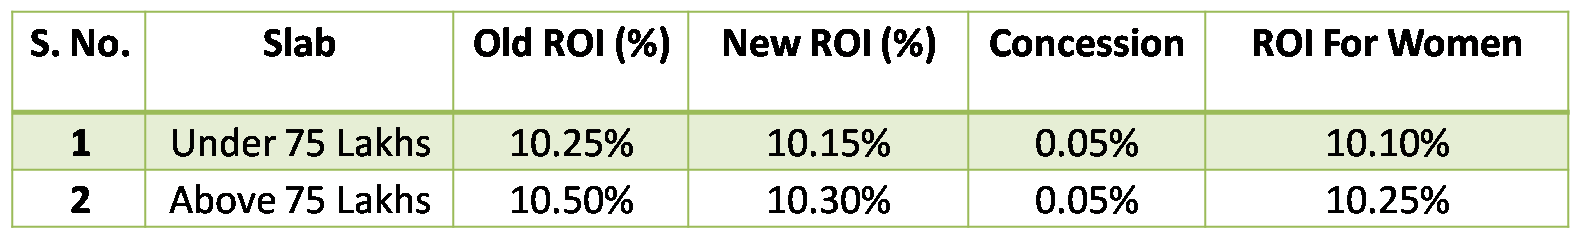 All Rates in effect since 20th December 2013